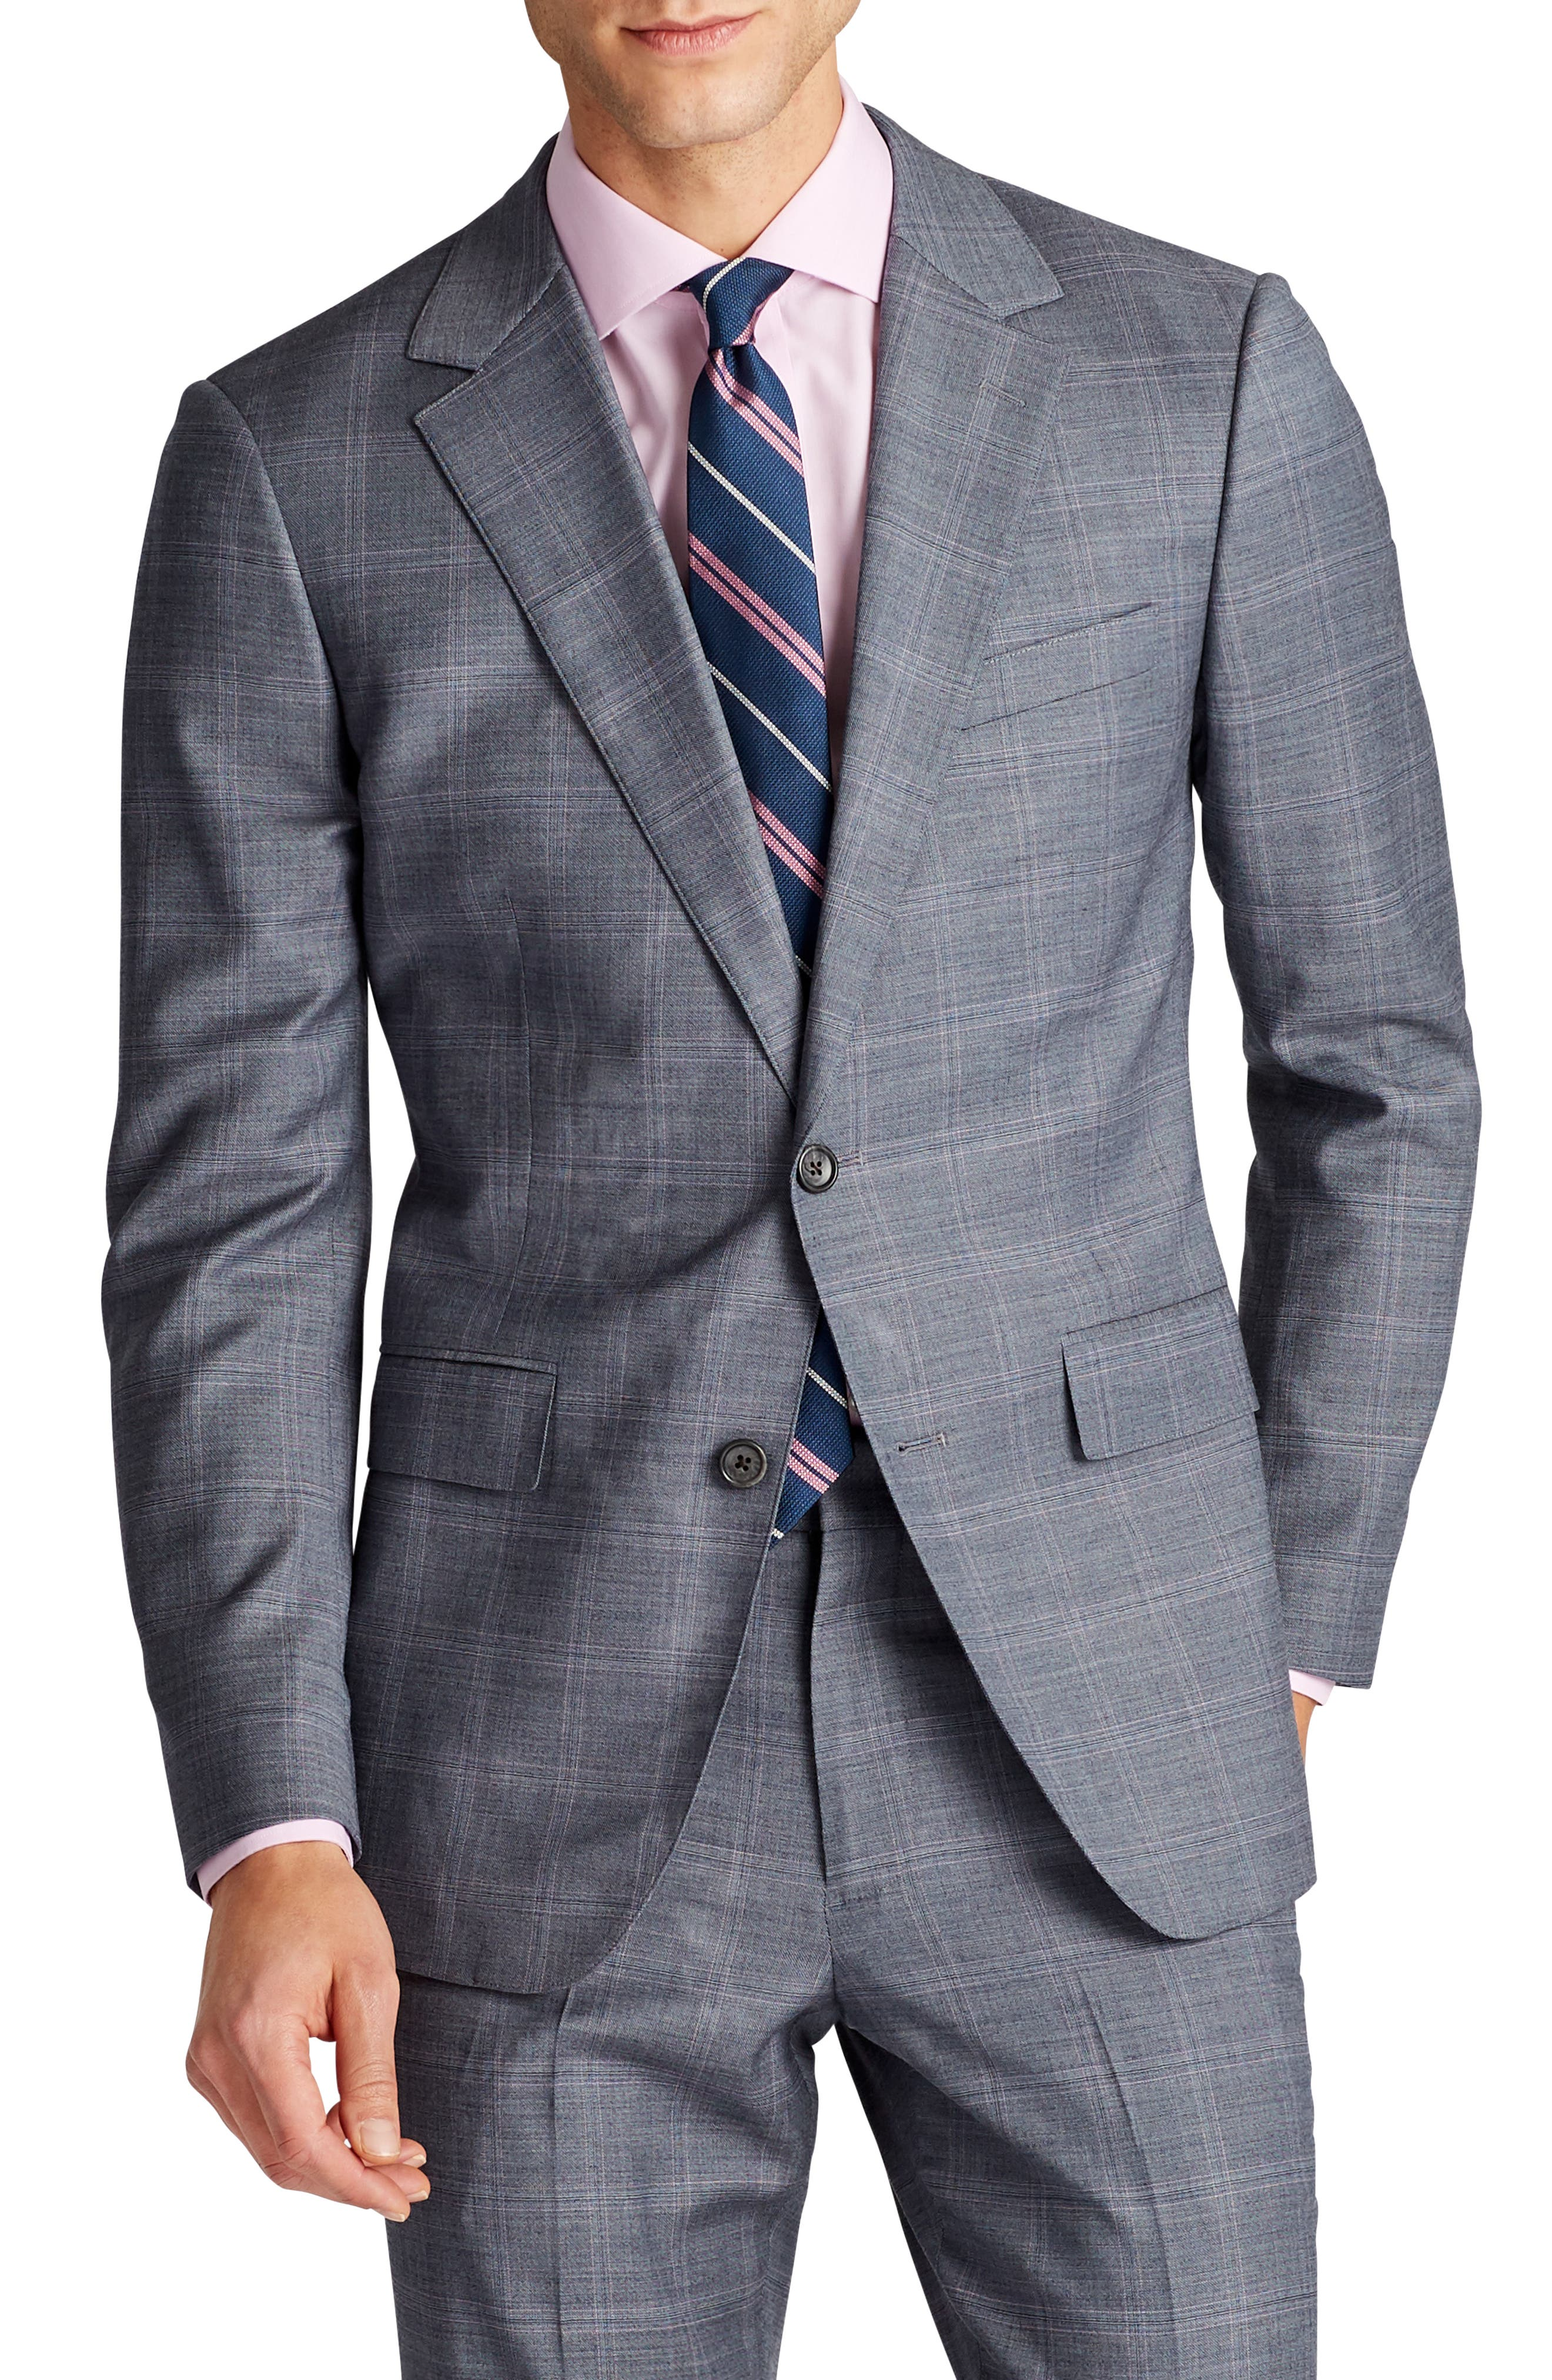 Jetsetter Slim Fit Stretch Plaid Wool Sport Coat,                             Main thumbnail 1, color,                             020